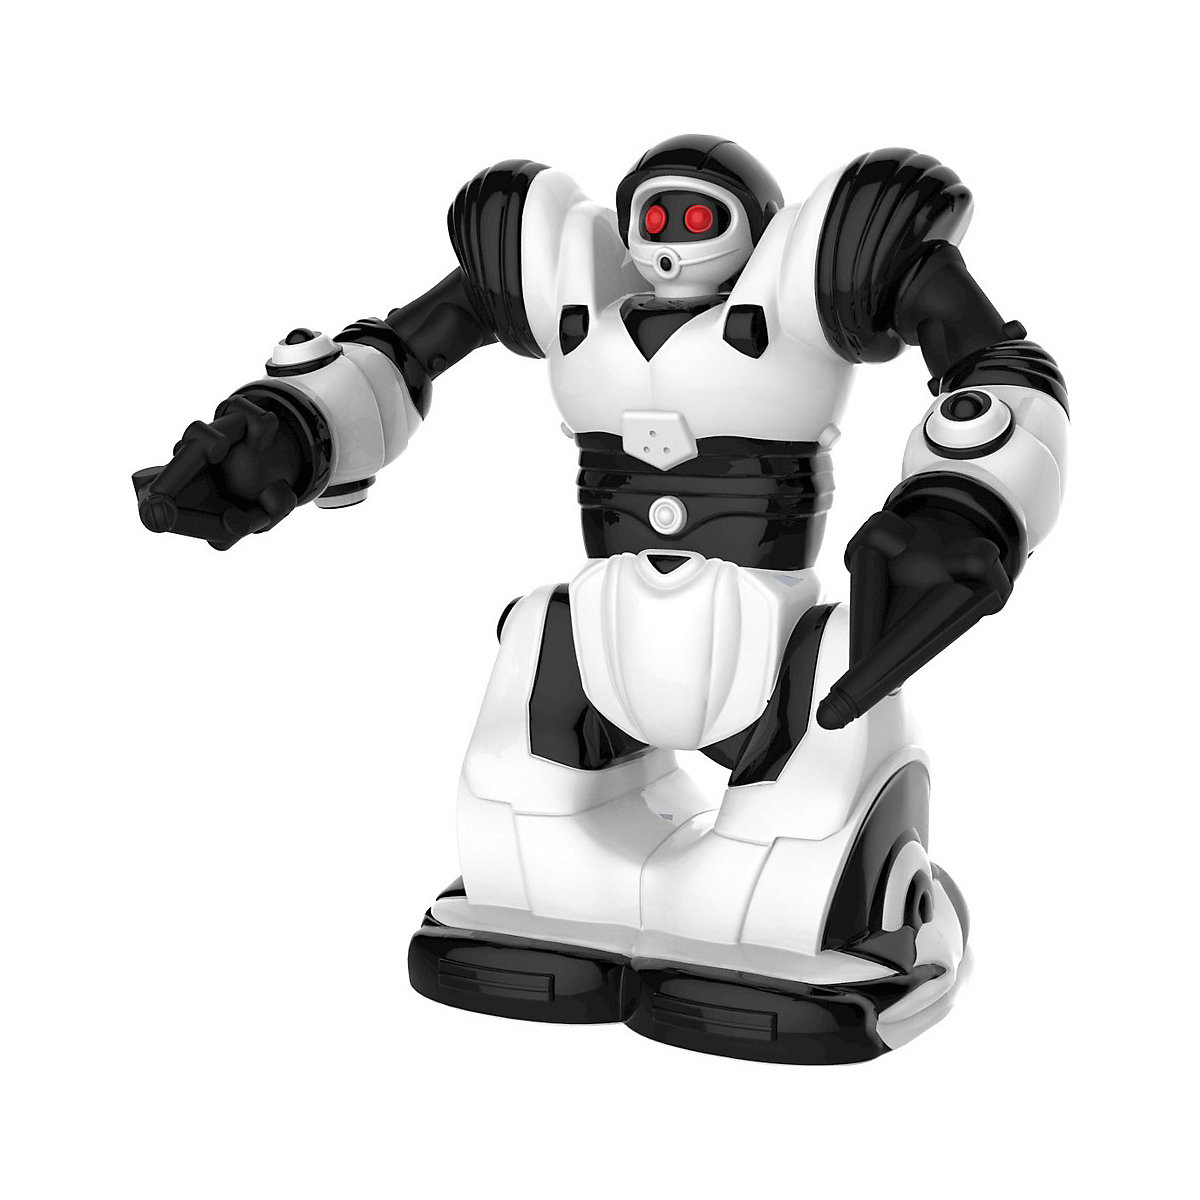 WowWee Robots & Accessories1 7315635 intellectual remote control toys robotic technology game for boys toy MTpromo wowwee robots